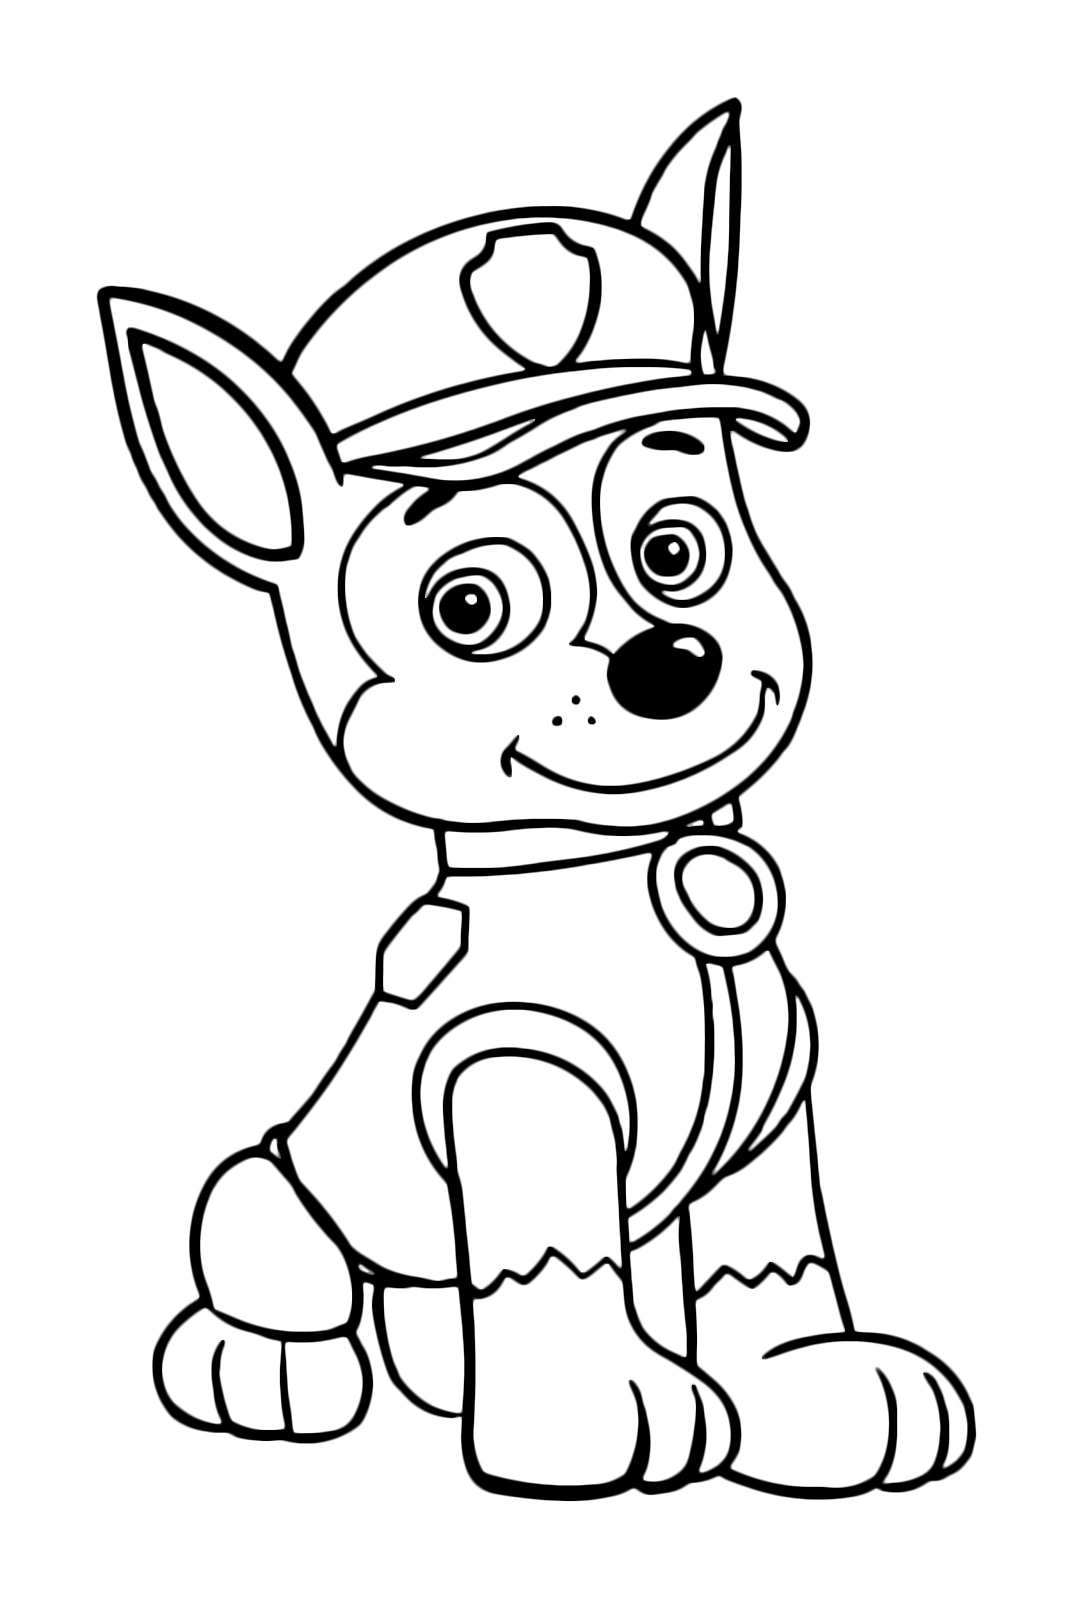 coloring paw patrol chase paw patrol coloring pages downoadable k5 worksheets coloring paw chase patrol